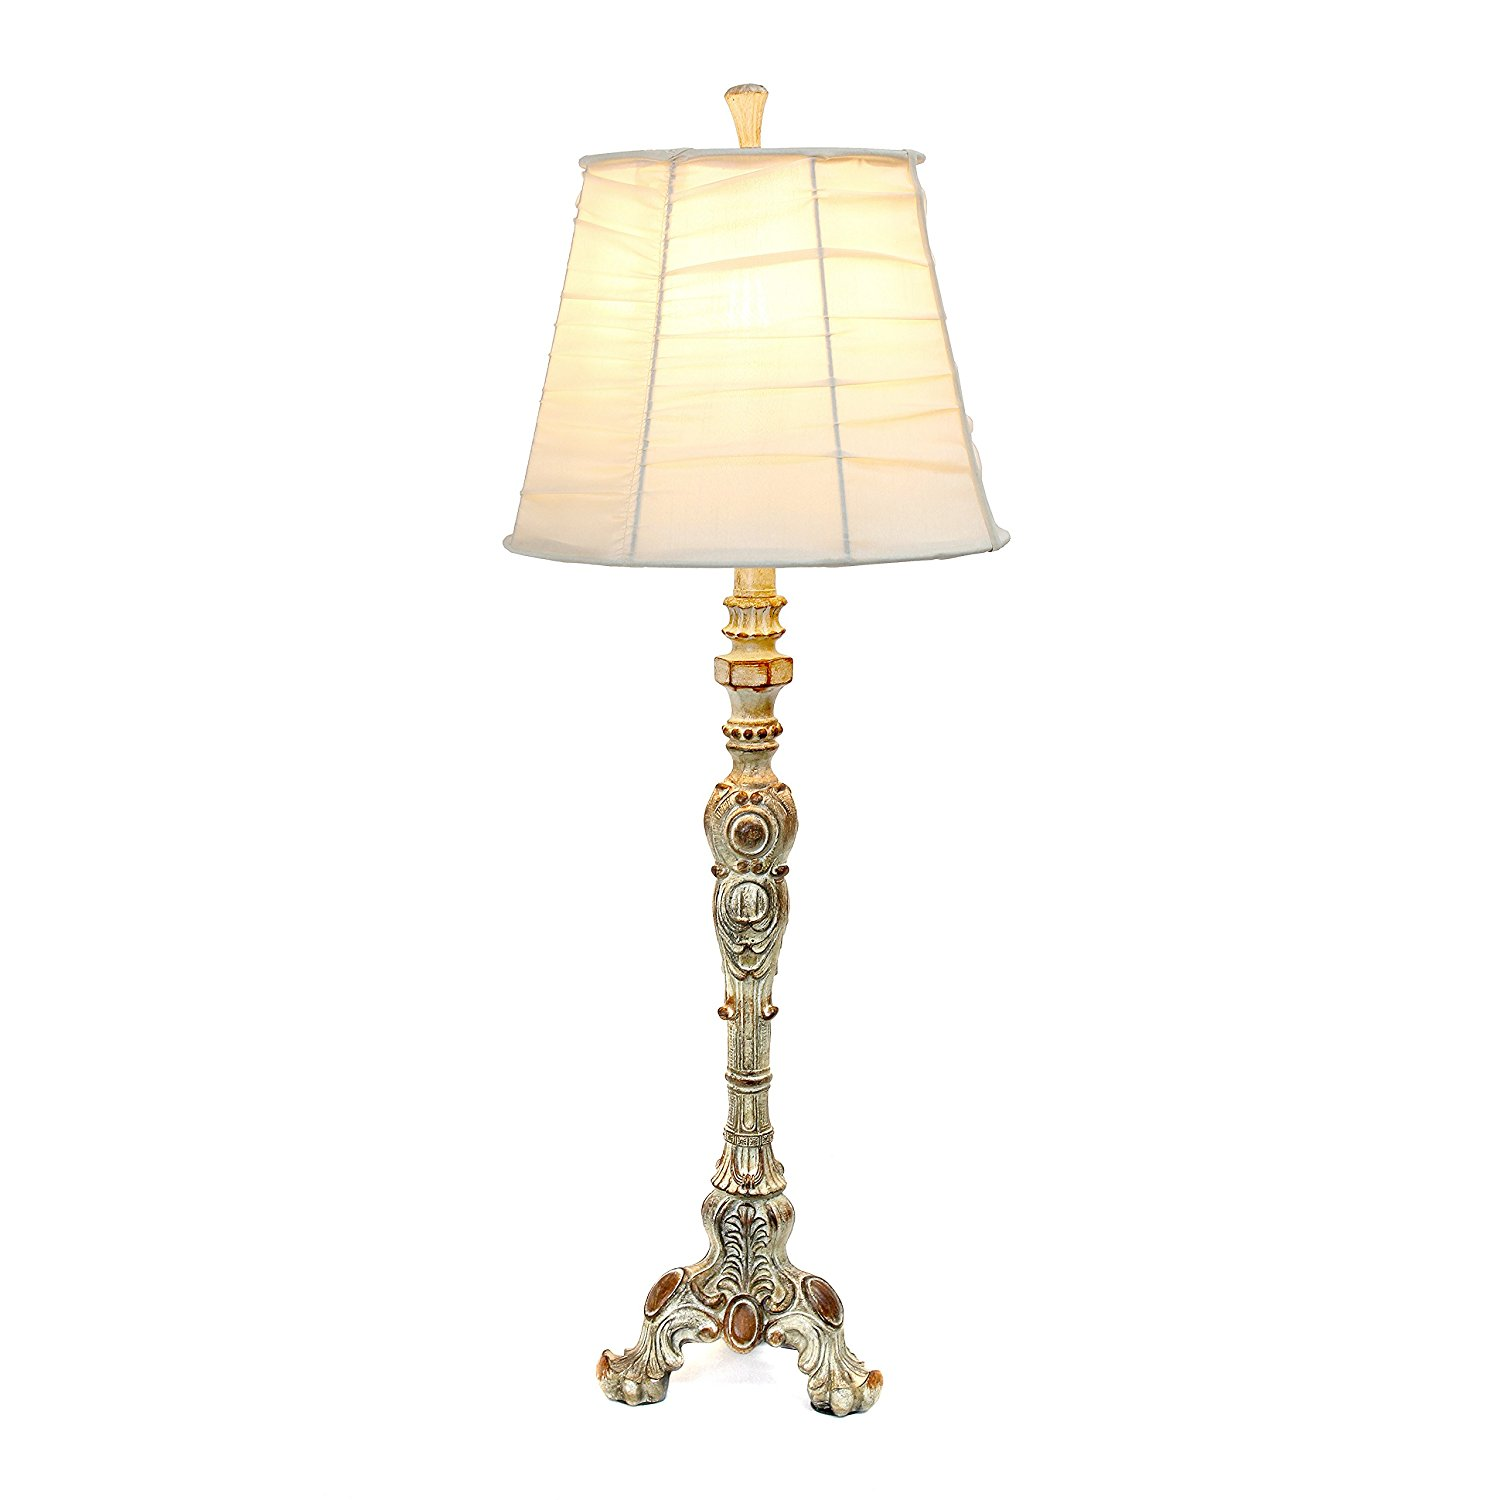 Cheap Crystal Table Lamp Shade Antique Find Crystal Table Lamp